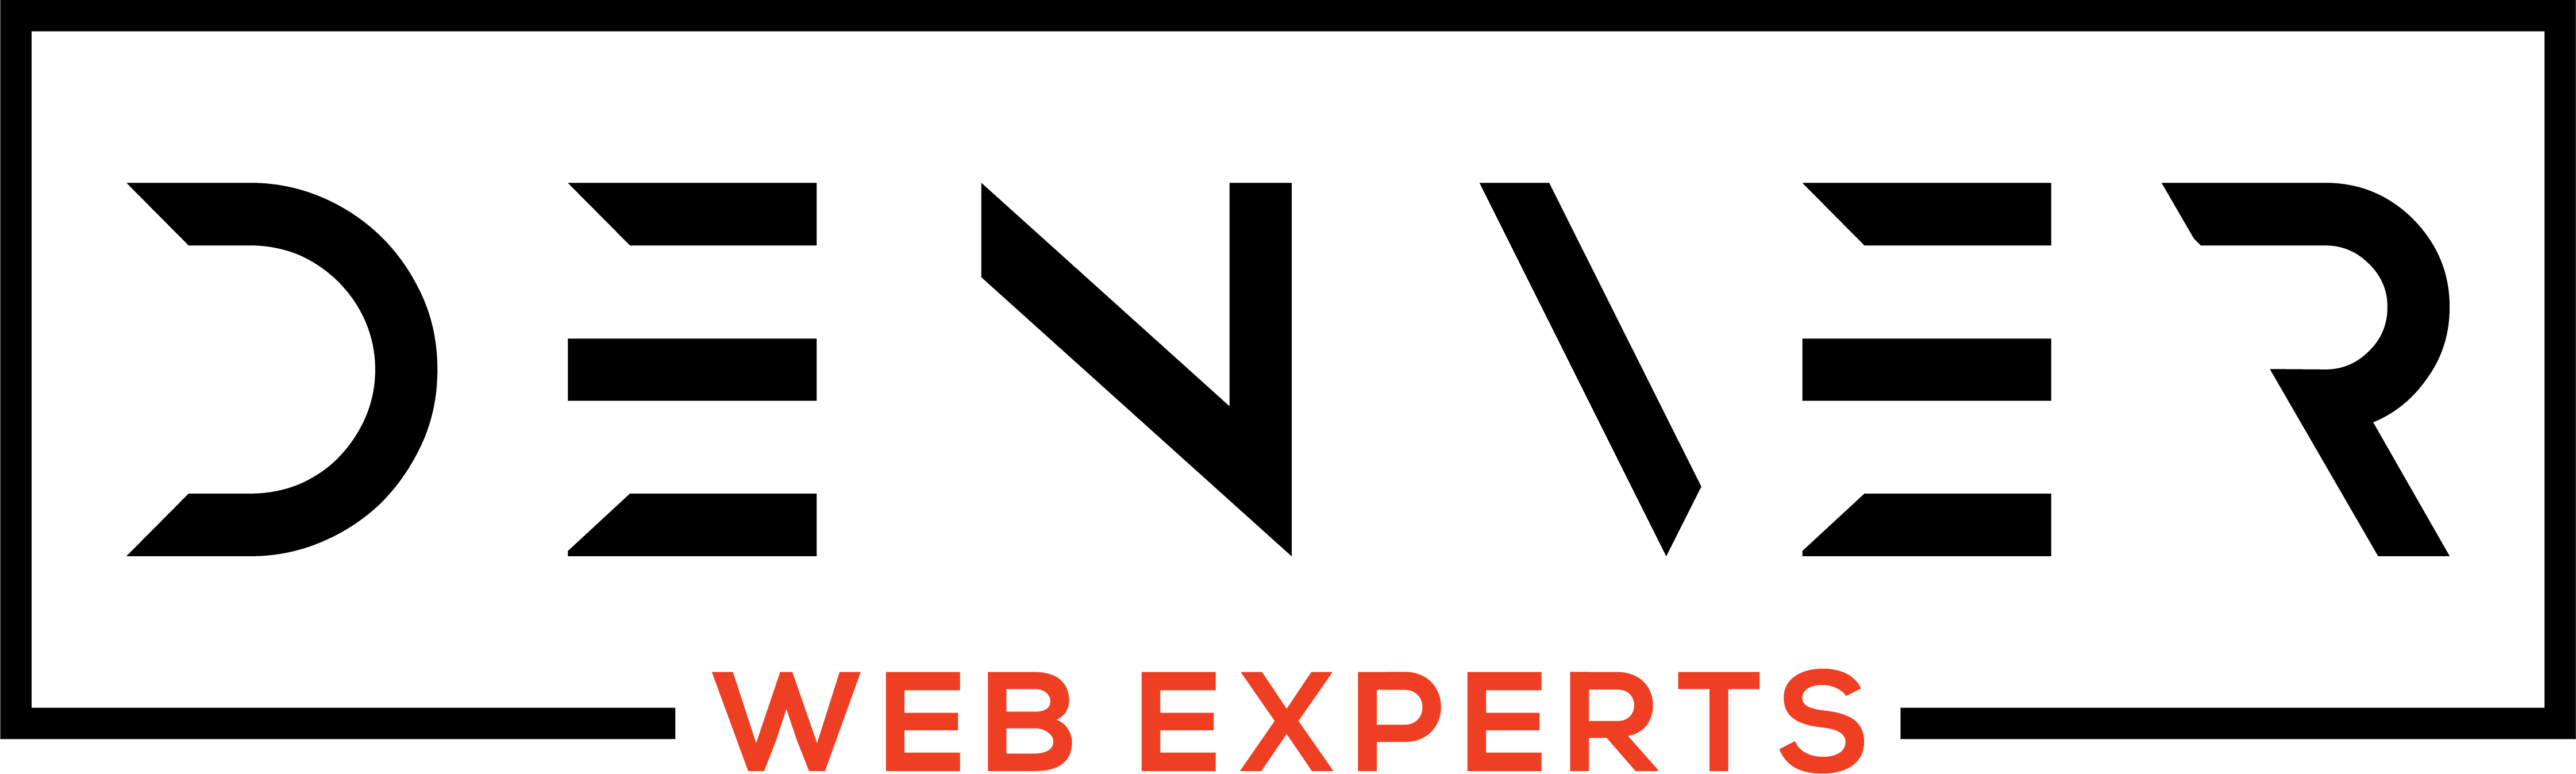 Denver Web Experts